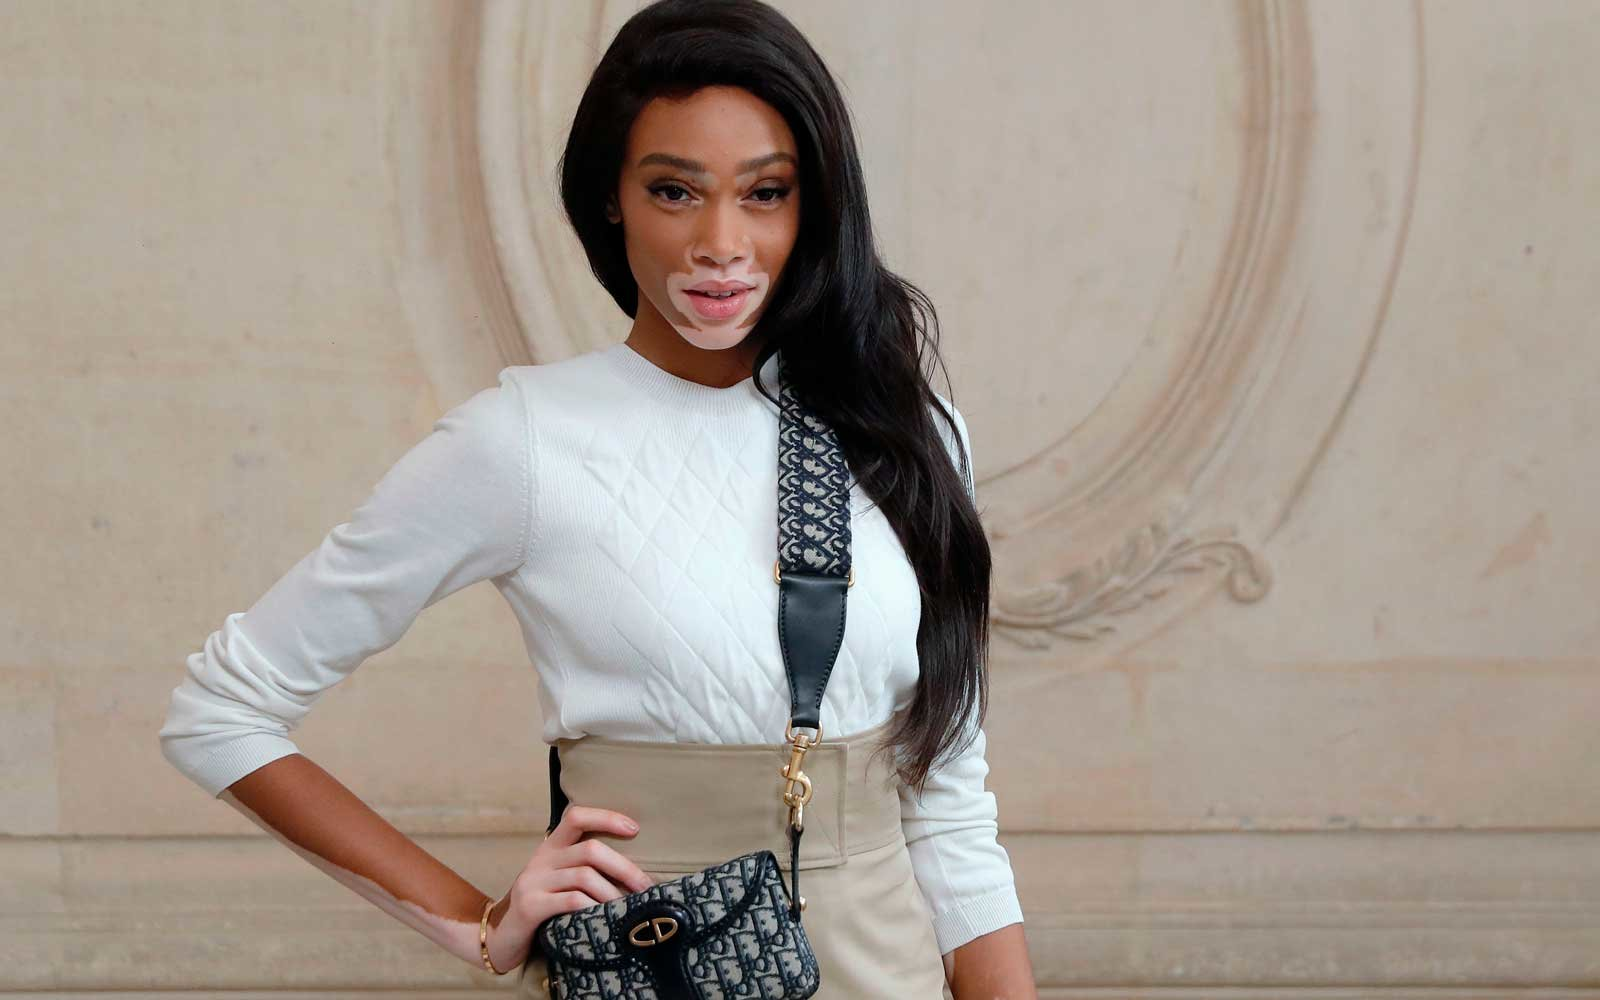 Canadian Model, Winnie Harlow